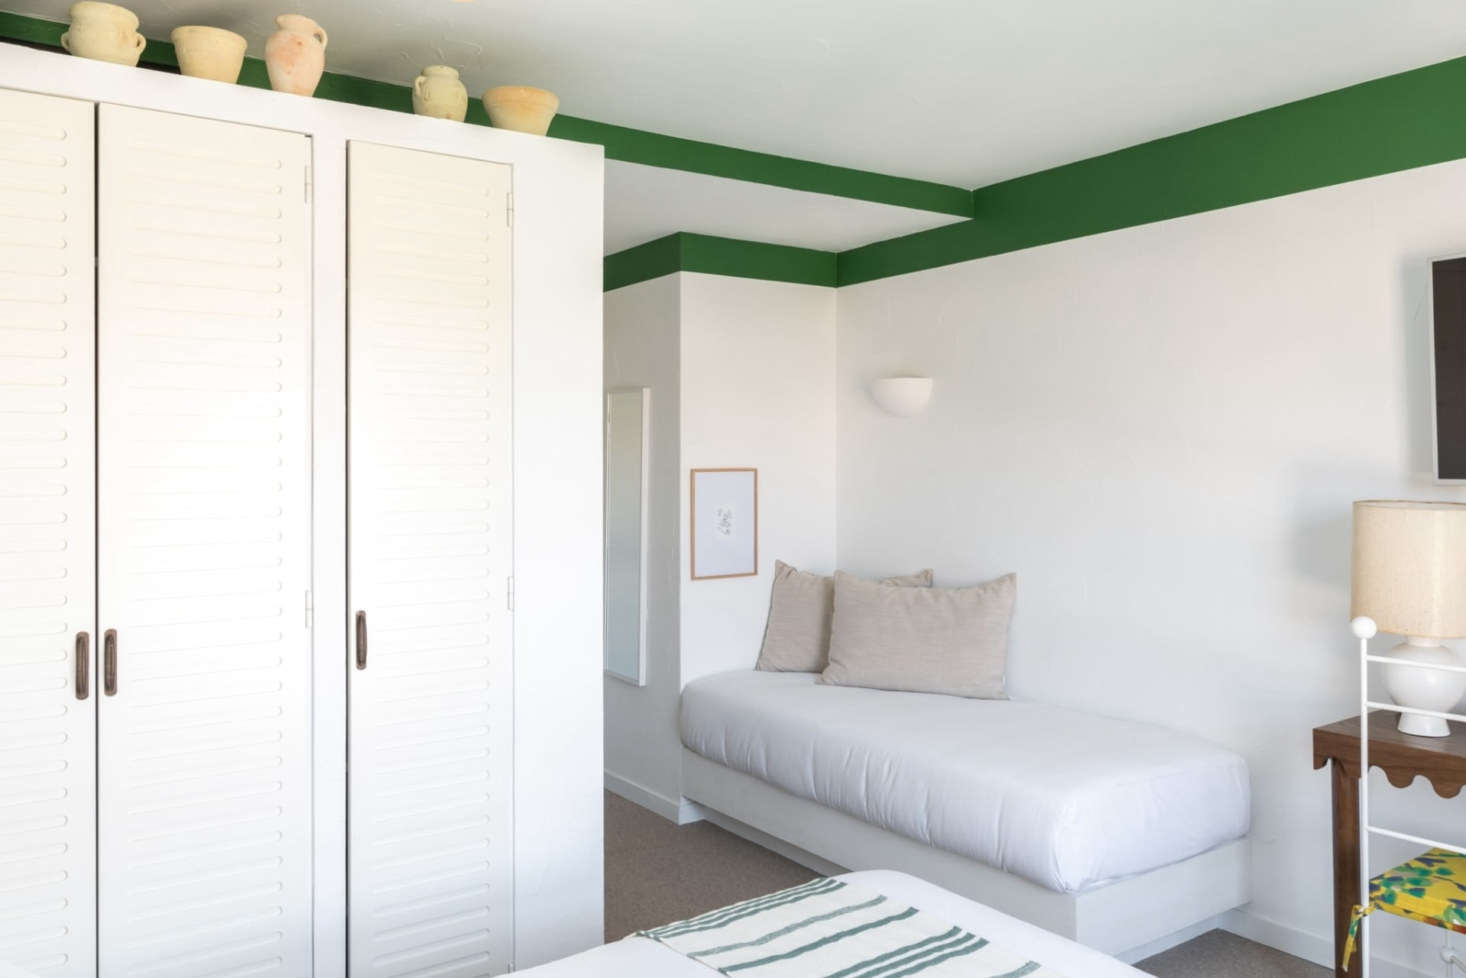 Bedrooms are simple and airy with ceramics as decor.